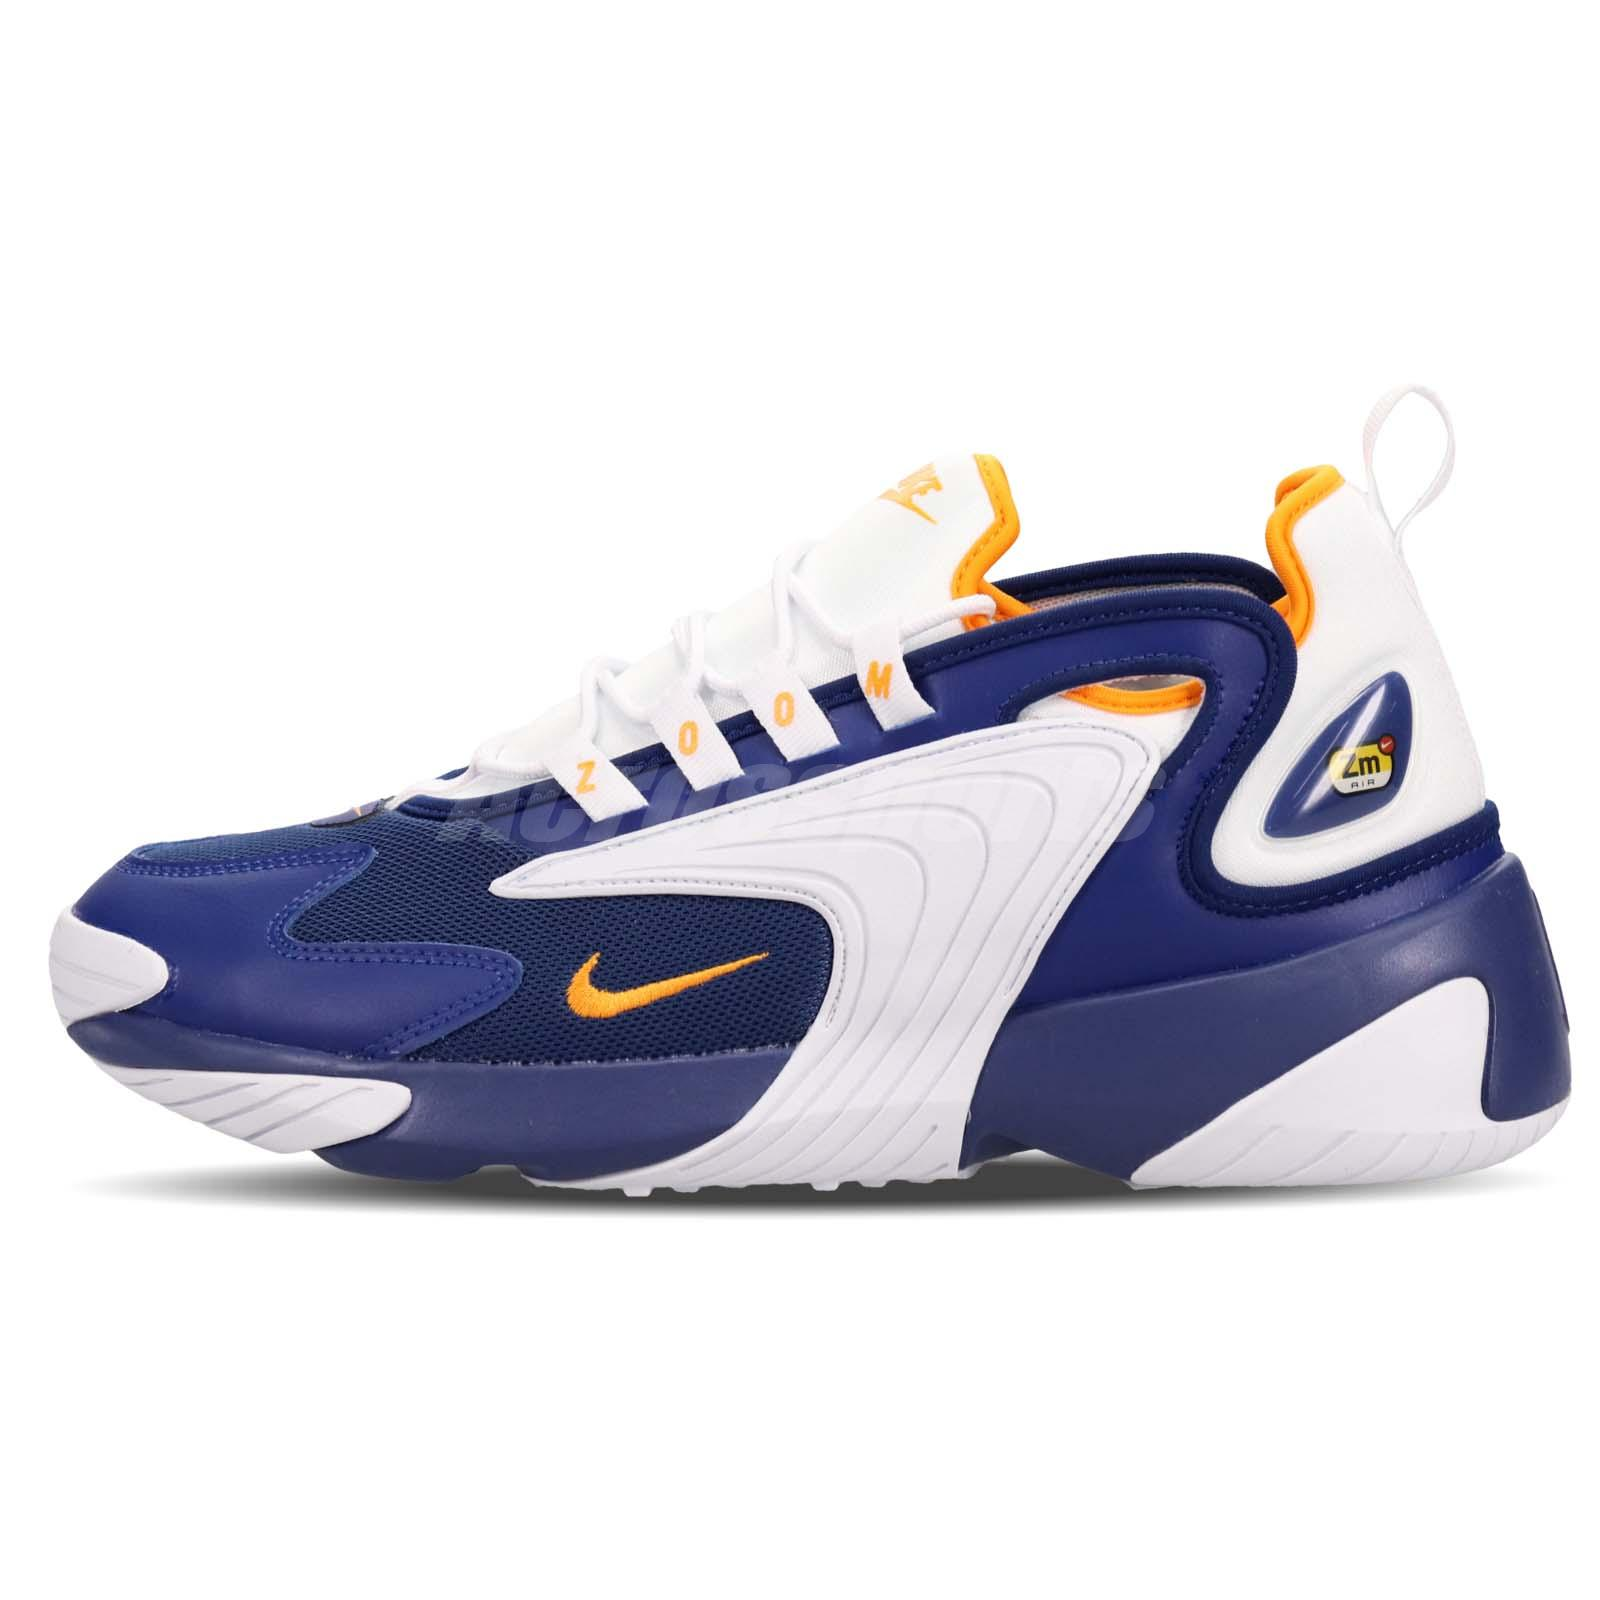 Details about Nike Zoom 2K Blue Orange White Mens Running Shoes Retro  Sneakers AO0269-400